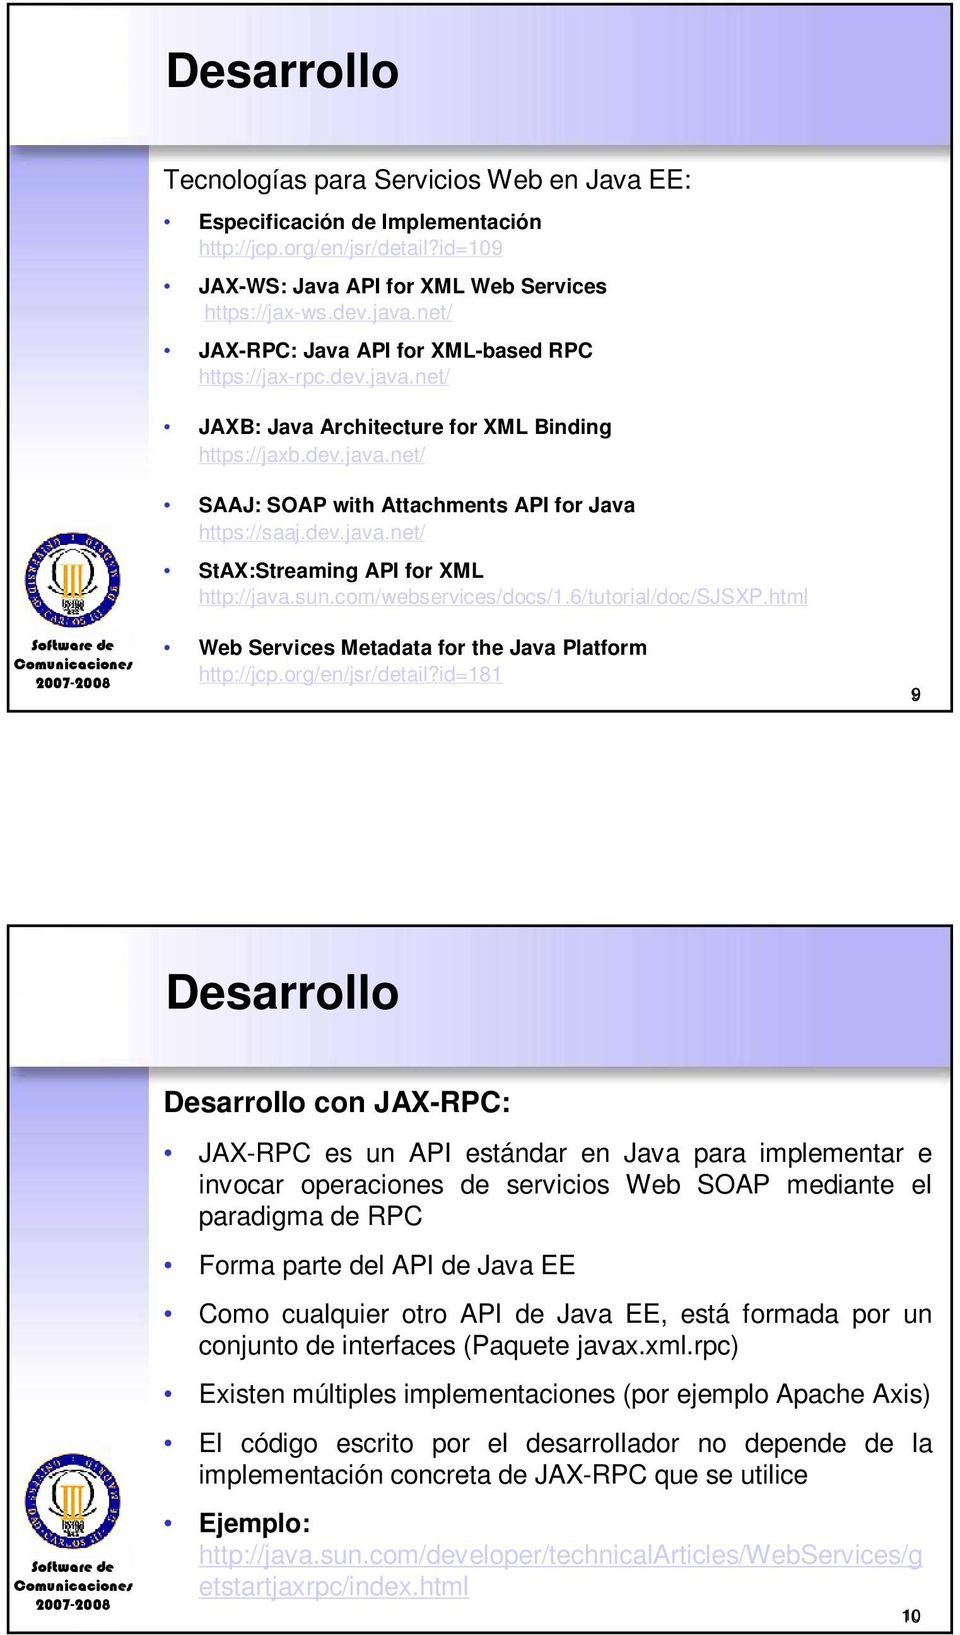 sun.com/webservices/docs/1.6/tutorial/doc/sjsxp.html Web Services Metadata for the Java Platform http://jcp.org/en/jsr/detail?